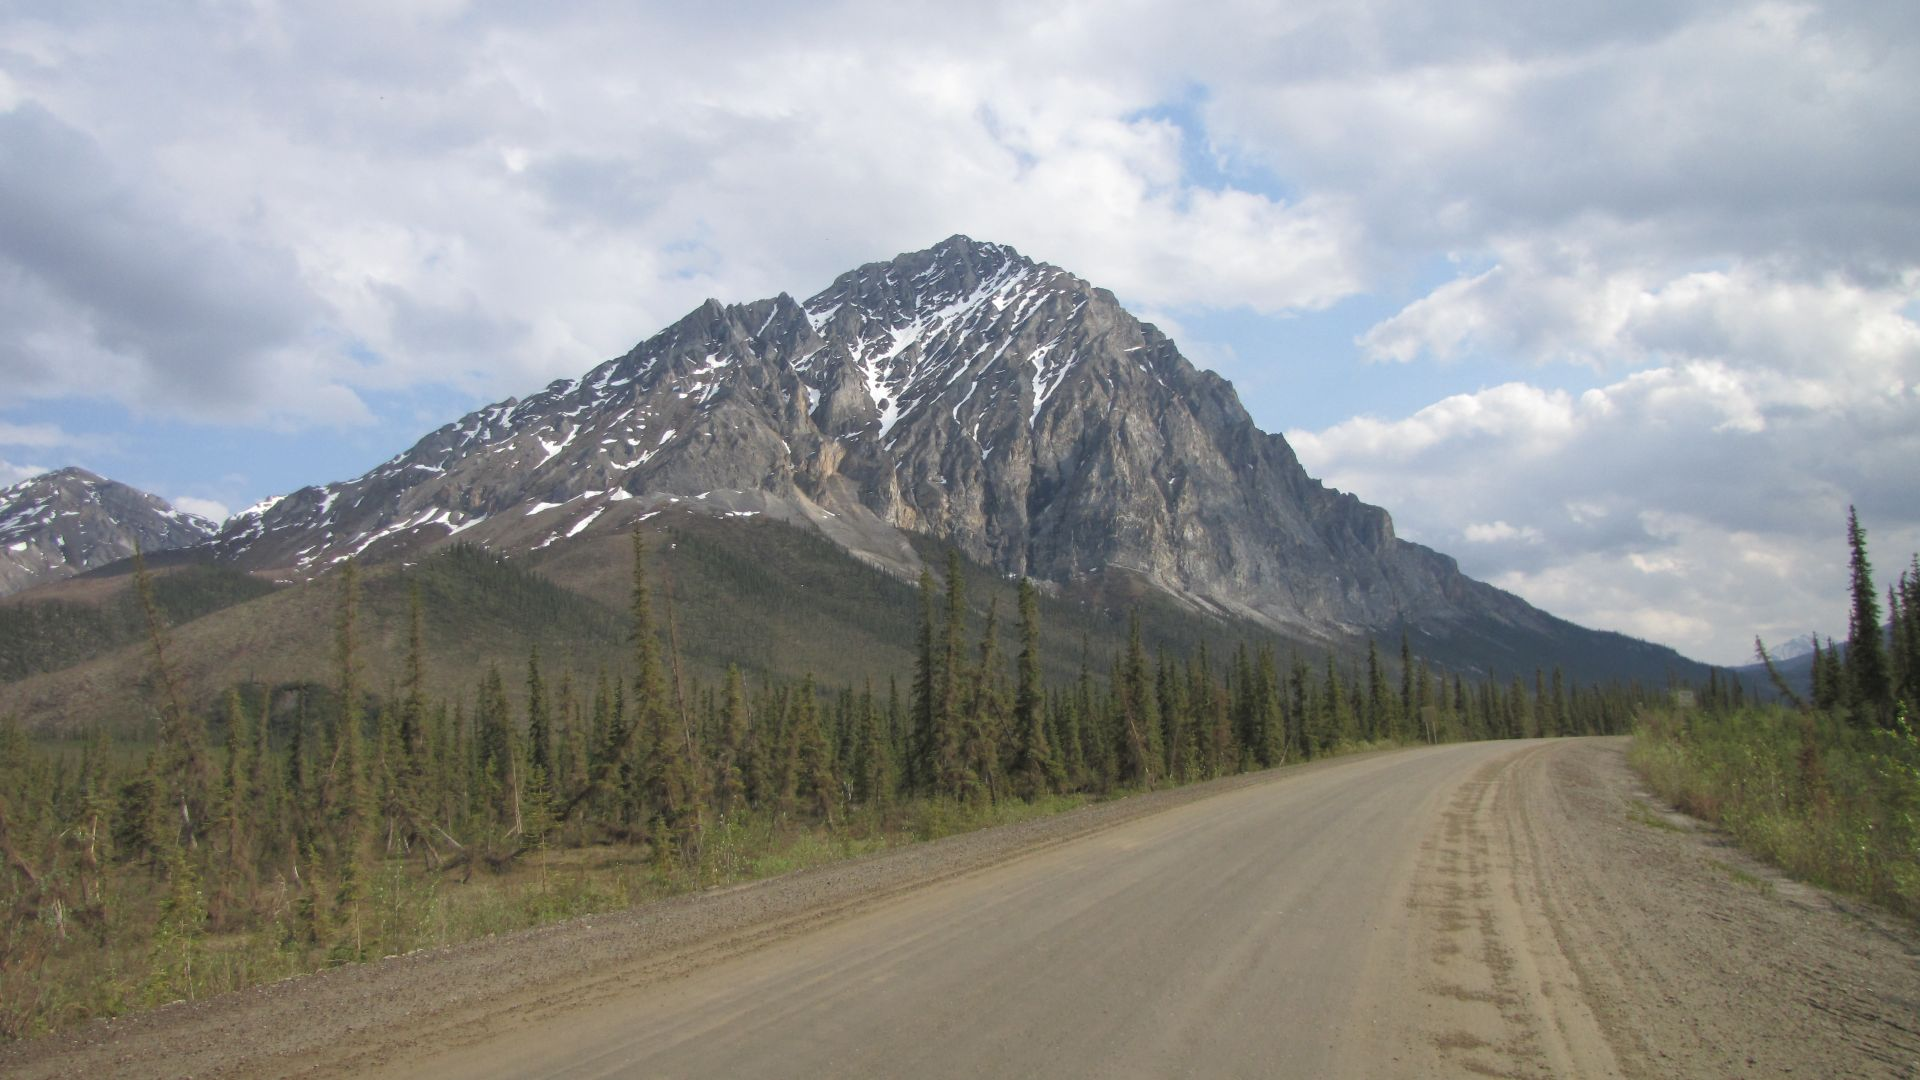 """Sukakpak Mountain, northern Alaska, USA, at the end of a very, very long day of gravel-riding over the snow-bound Brooks Range, on the way to the tiny truckstop at Coldfoot, after a week of wild camping in bear country. Taken during """"Part 1"""" of my 7-month solo ride in 2009 from the Arctic Ocean coast to Mexico, later following the length of the Rocky Mountains"""